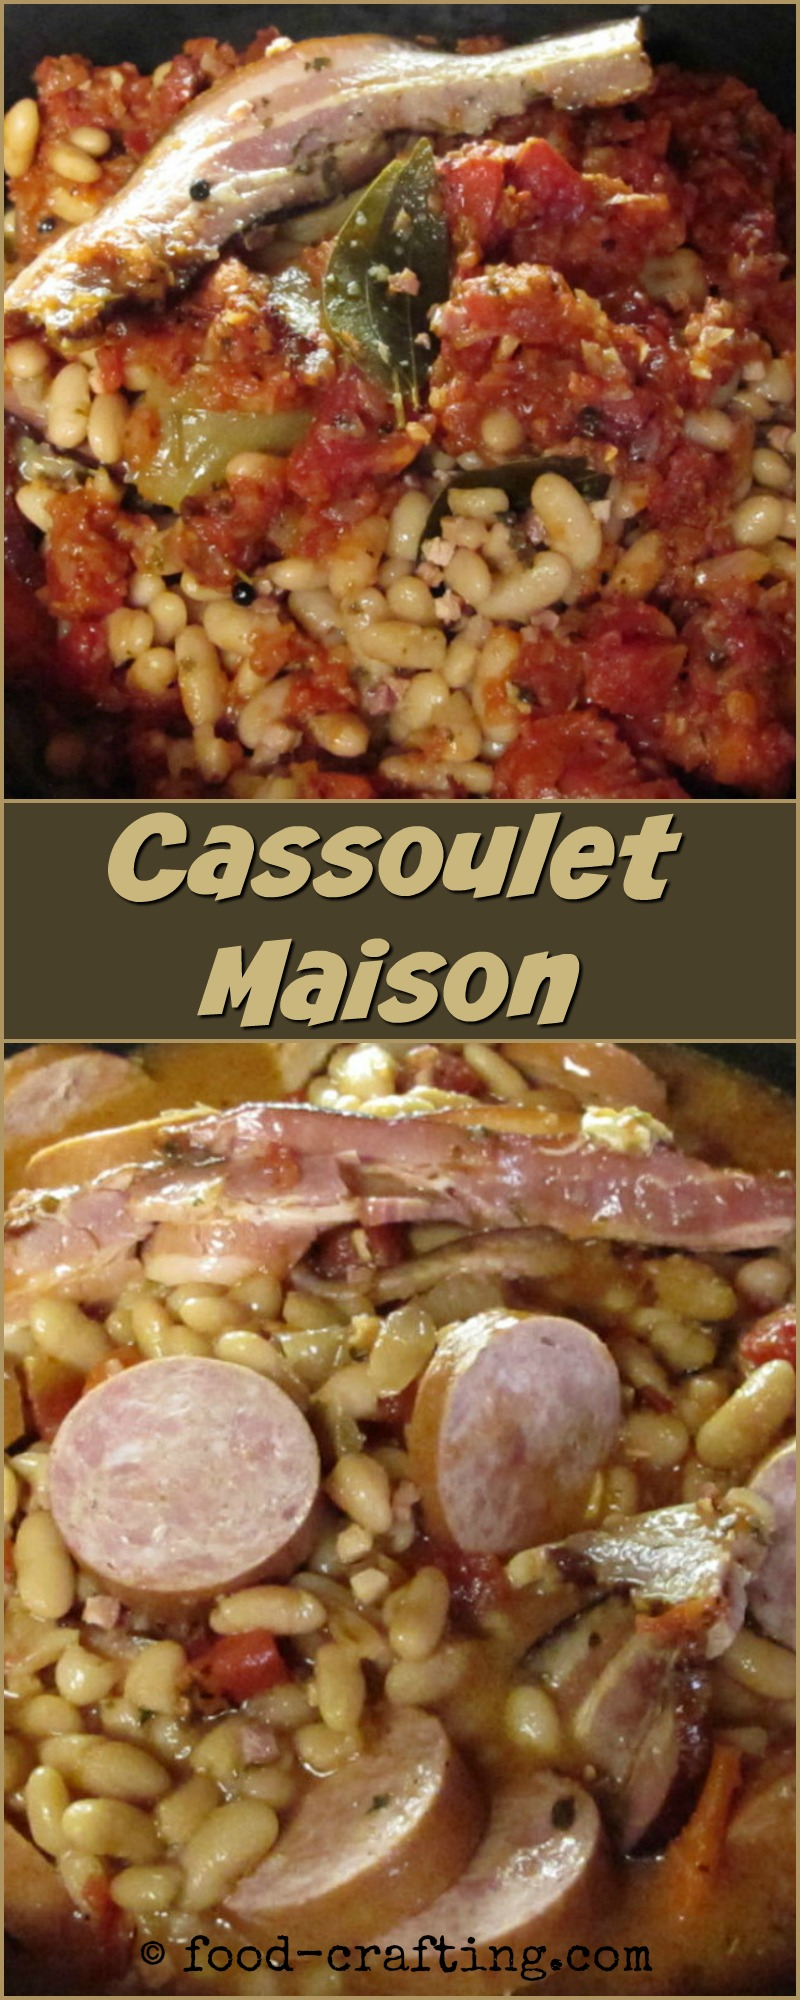 Recipe for a classic French Cassoulet Maison is the perfect one-pot meal for a winter weekend.